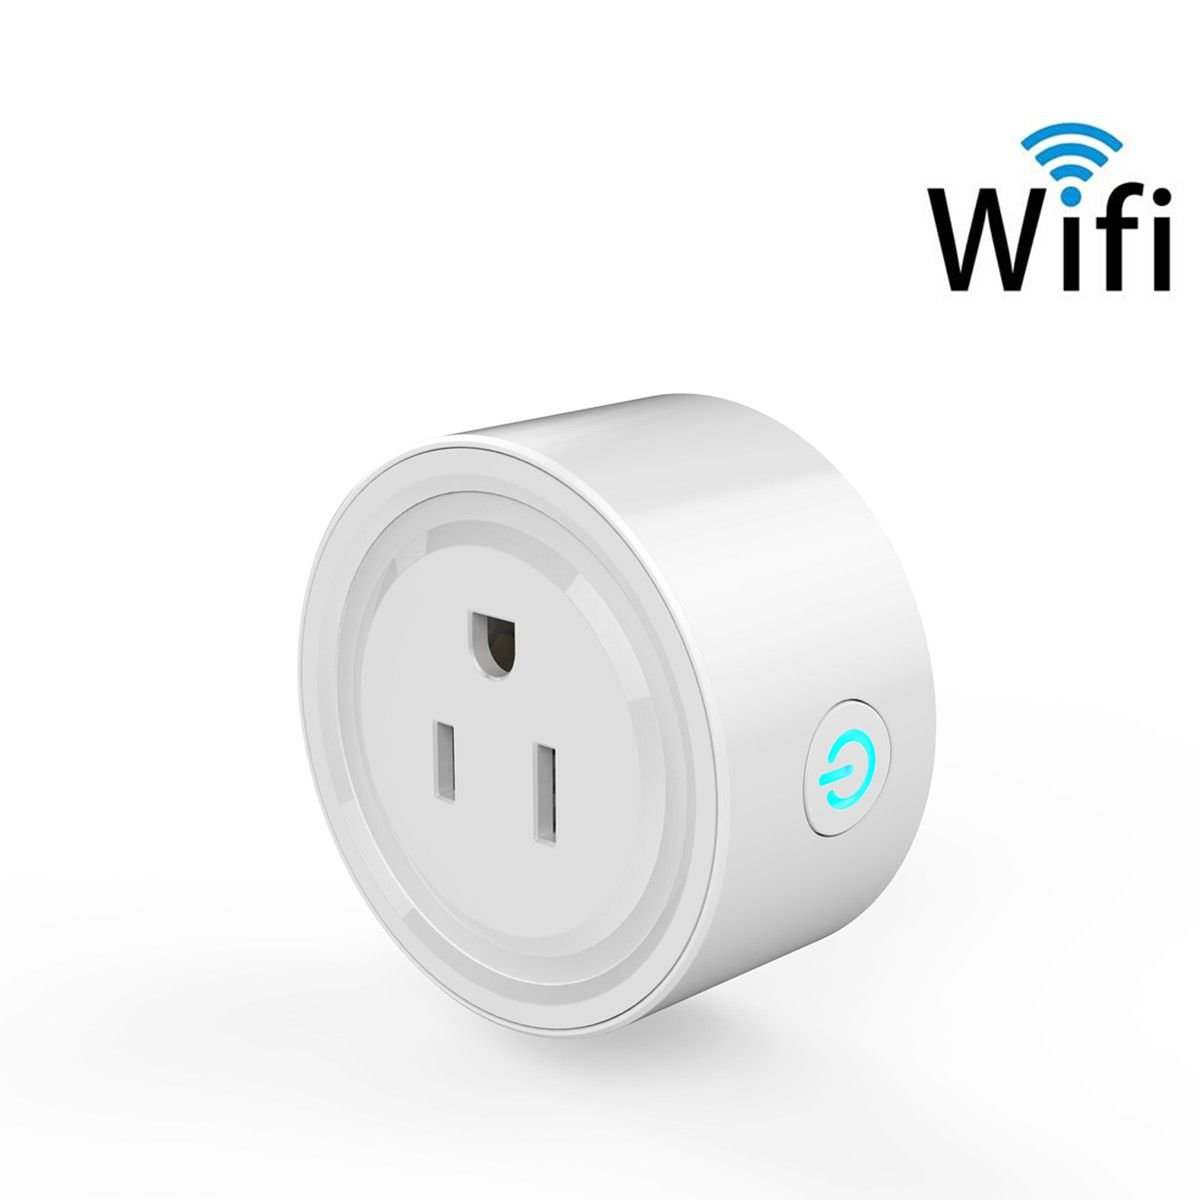 Smart Socket, MWAY Mini Smart Plug WiFi Enabled,Remote Control From Anywhere,Compatible with Alexa,Support 2.4GHz Wifi Networks,Voltage 100-240V,Electrical Power Switch for Household Applicances